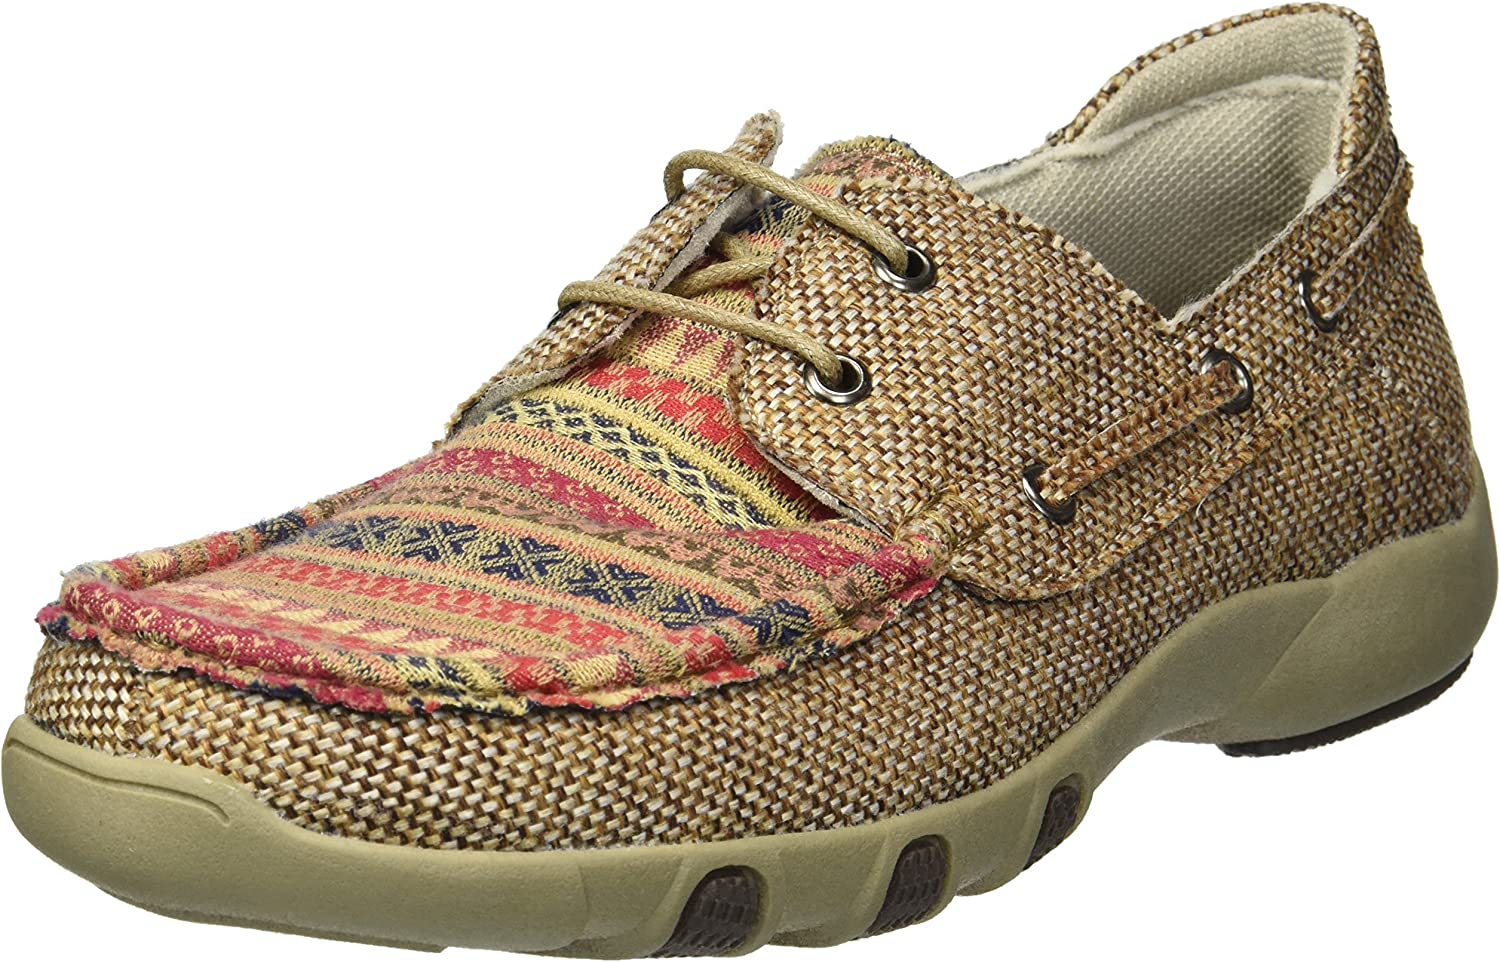 Roper Womens Lacee Ii Driving Style Loafer